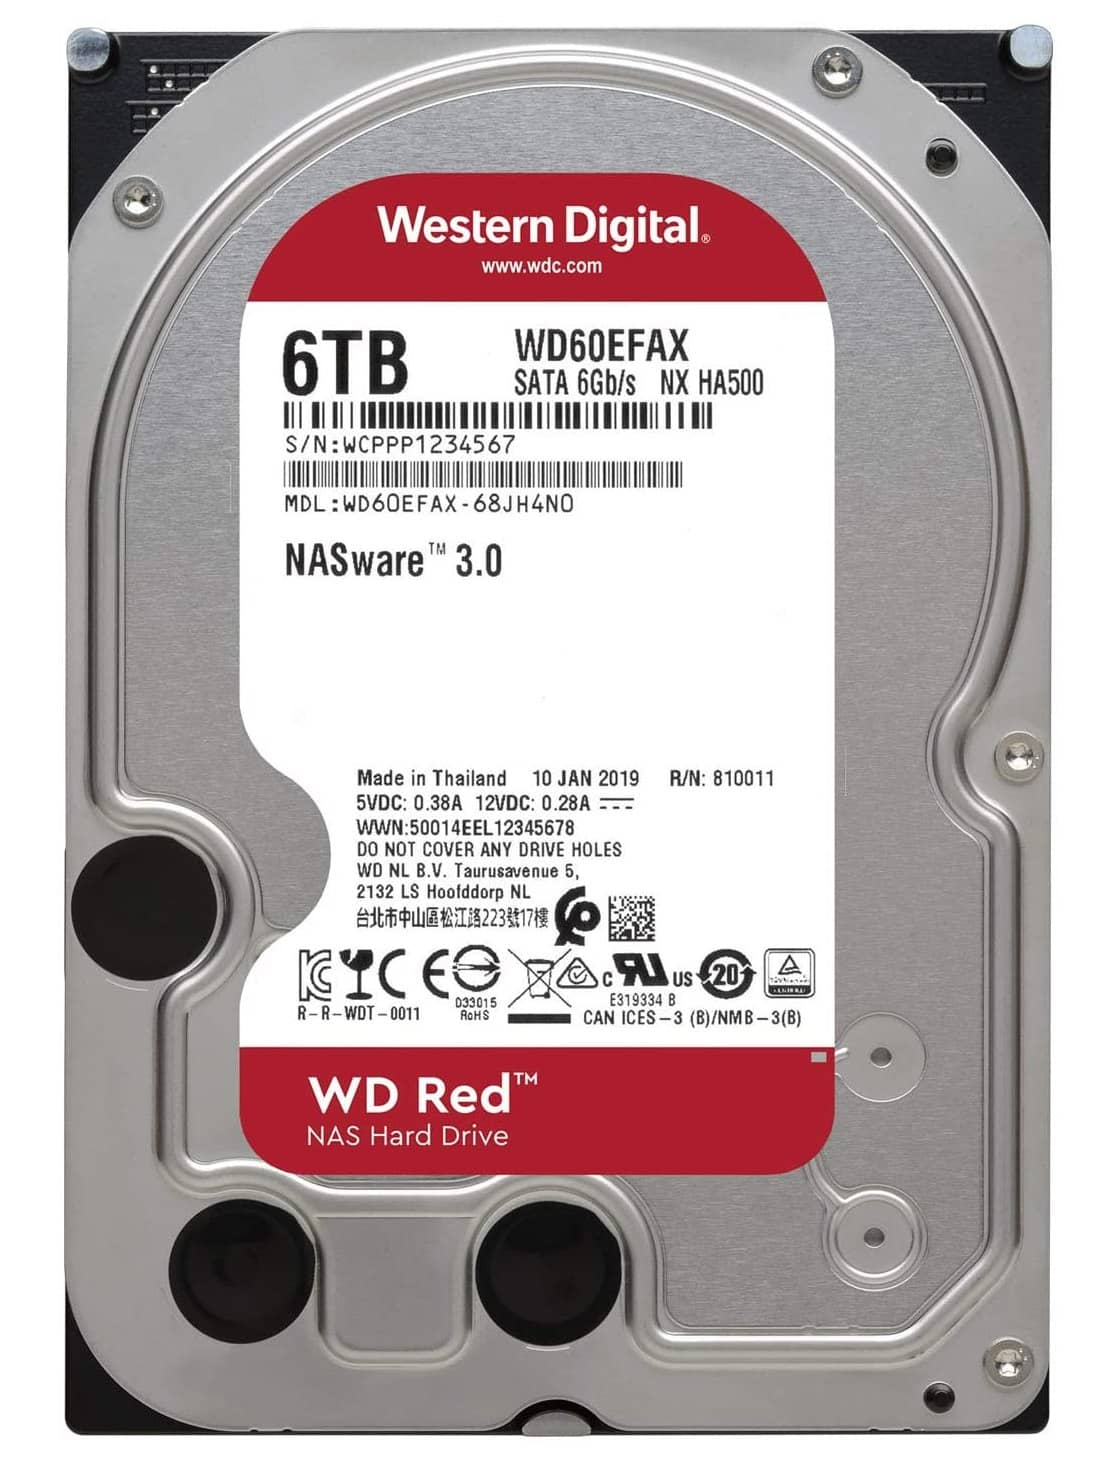 6TB disk WD Red revize 0EFAX se SMR Amazon